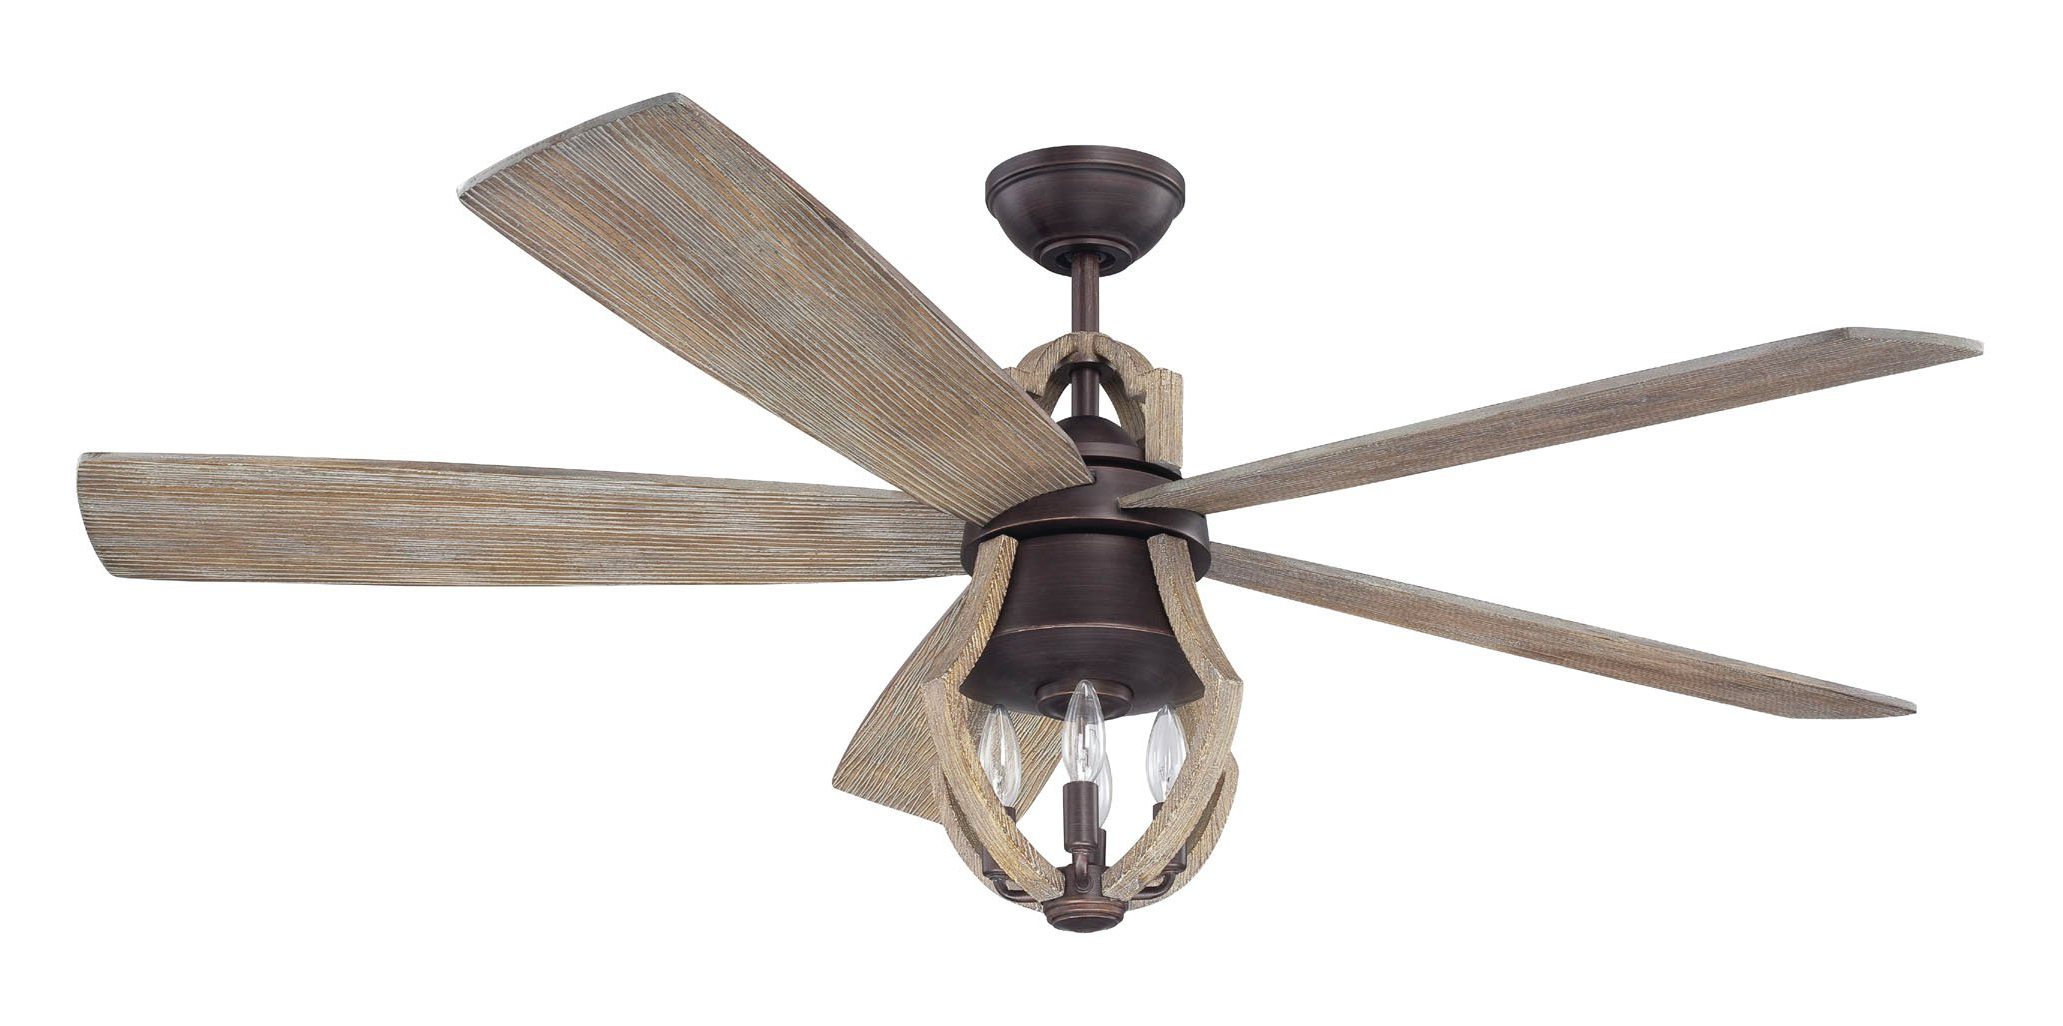 "Hamlett 5 Blade Ceiling Fans Inside Most Popular 56"" Marcoux 5 Blade Ceiling Fan With Remote, Light Kit Included (Gallery 19 of 20)"